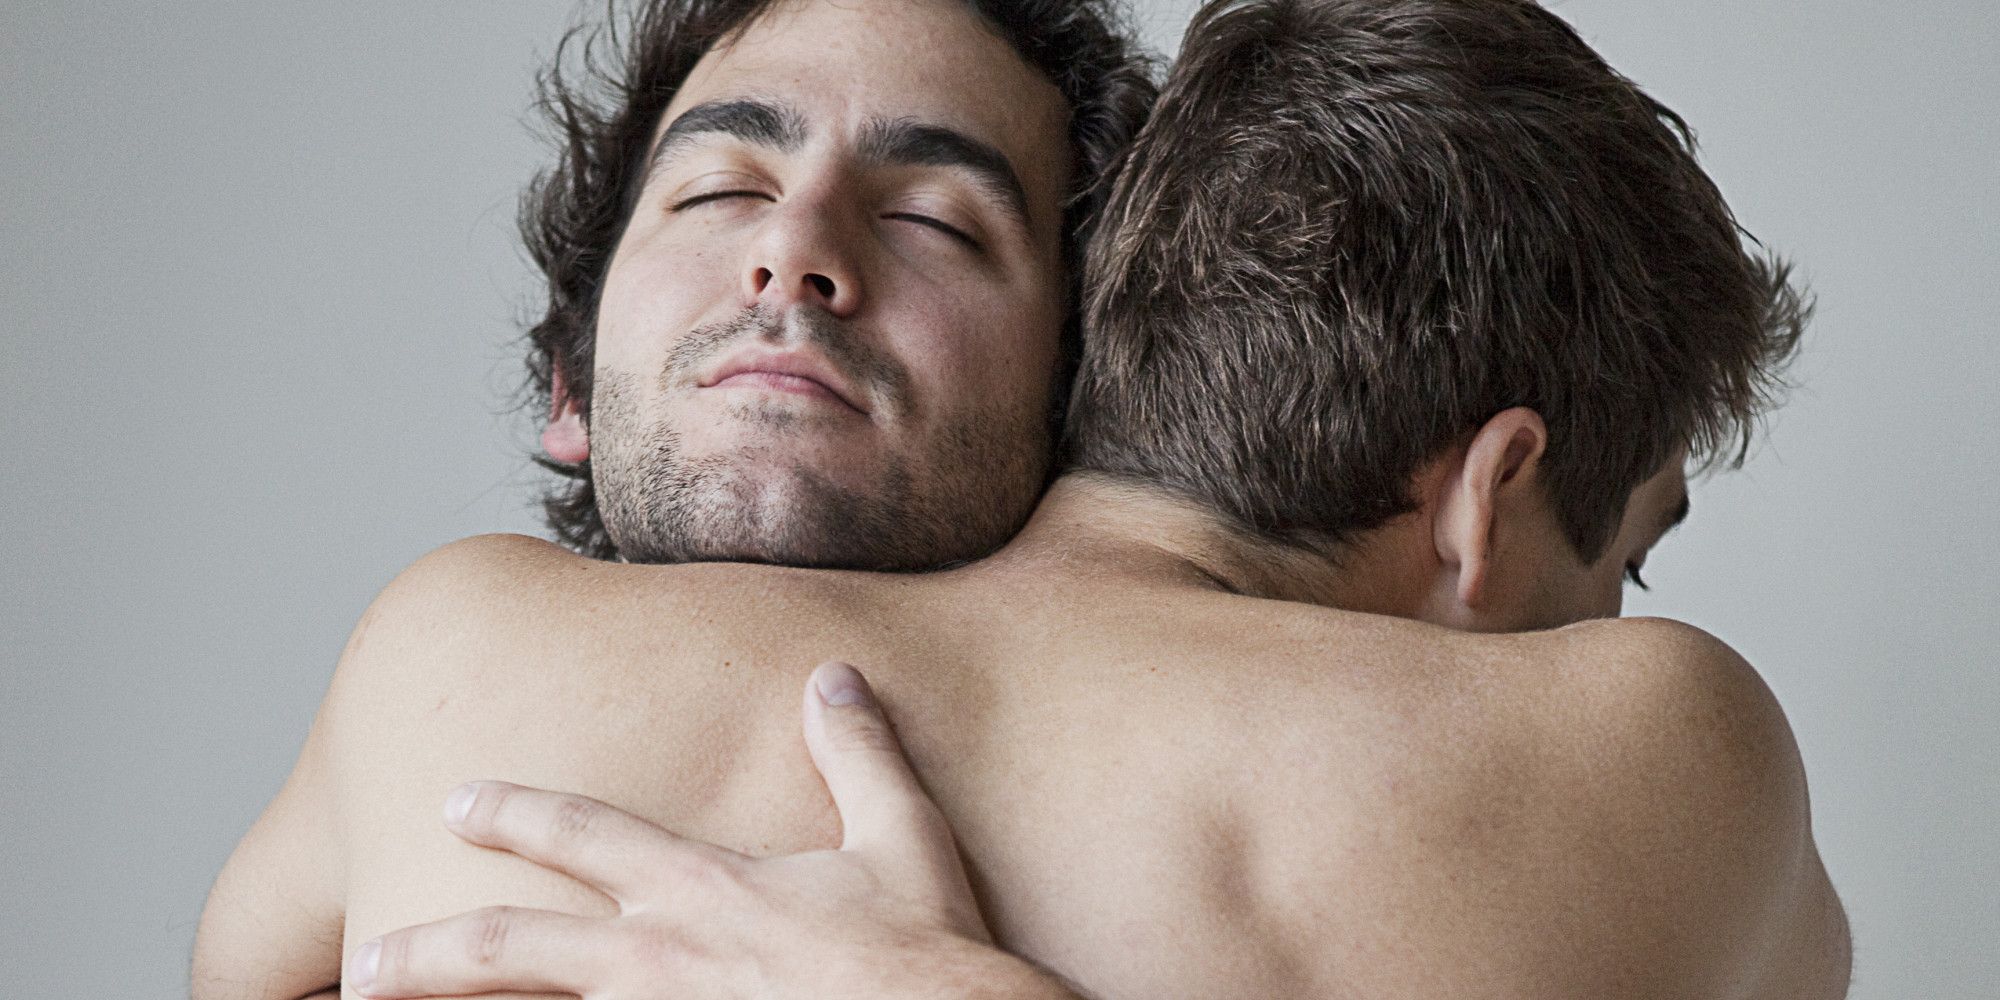 Gay Couple Embracing In The Couch By Wavebreakmedia